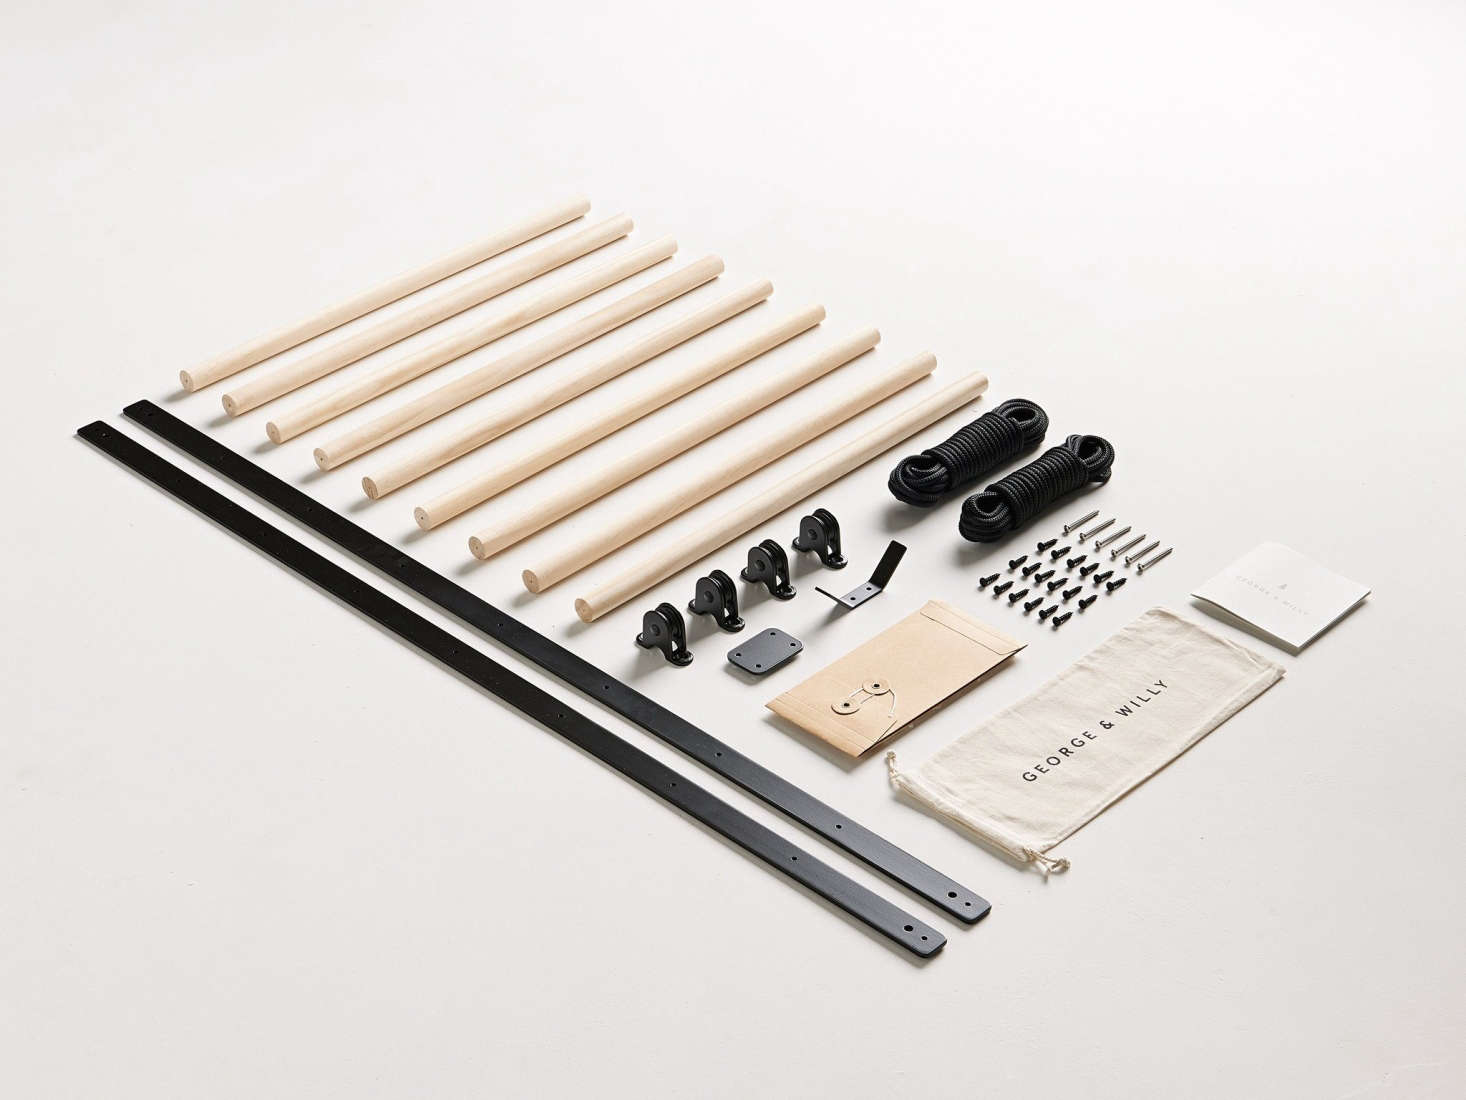 The rack comes disassembled and is available in black or white.